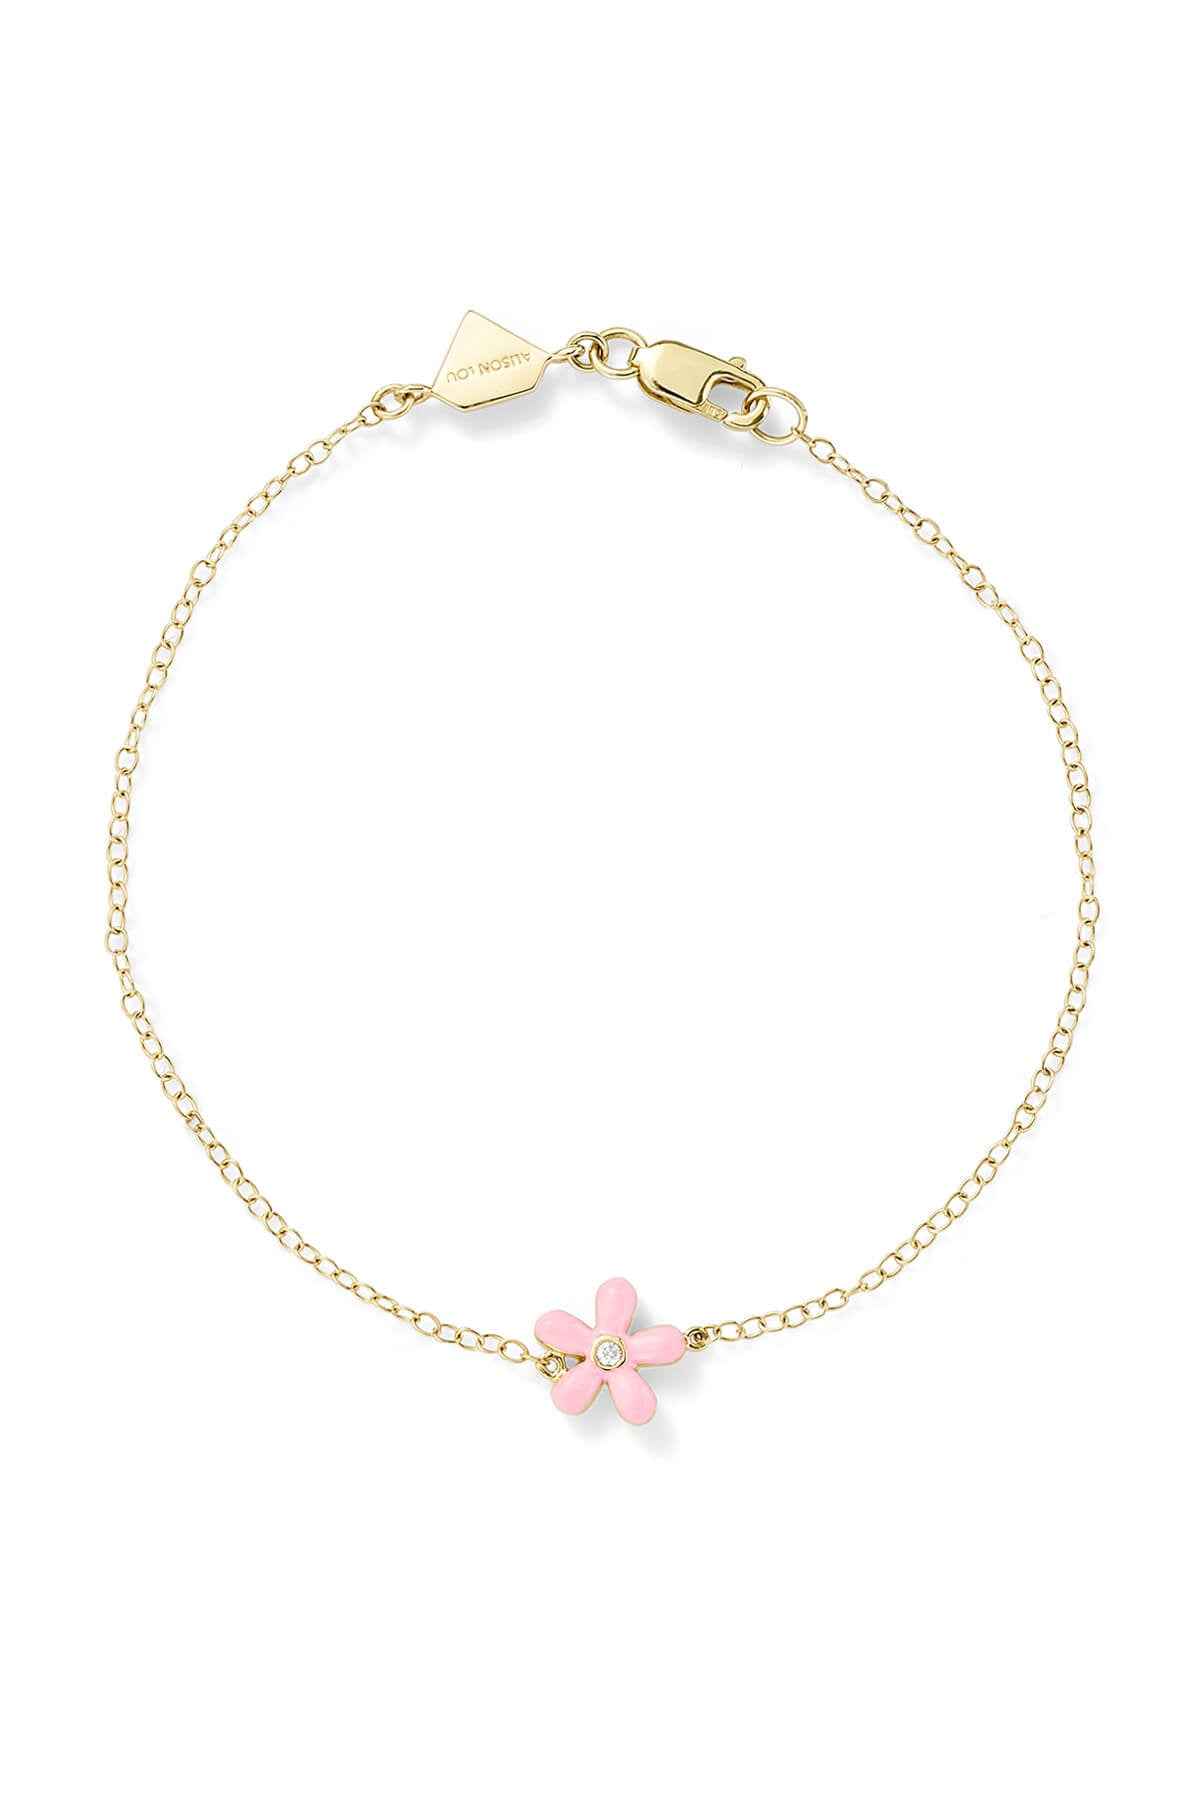 Single Wildflower Bracelet - In Stock